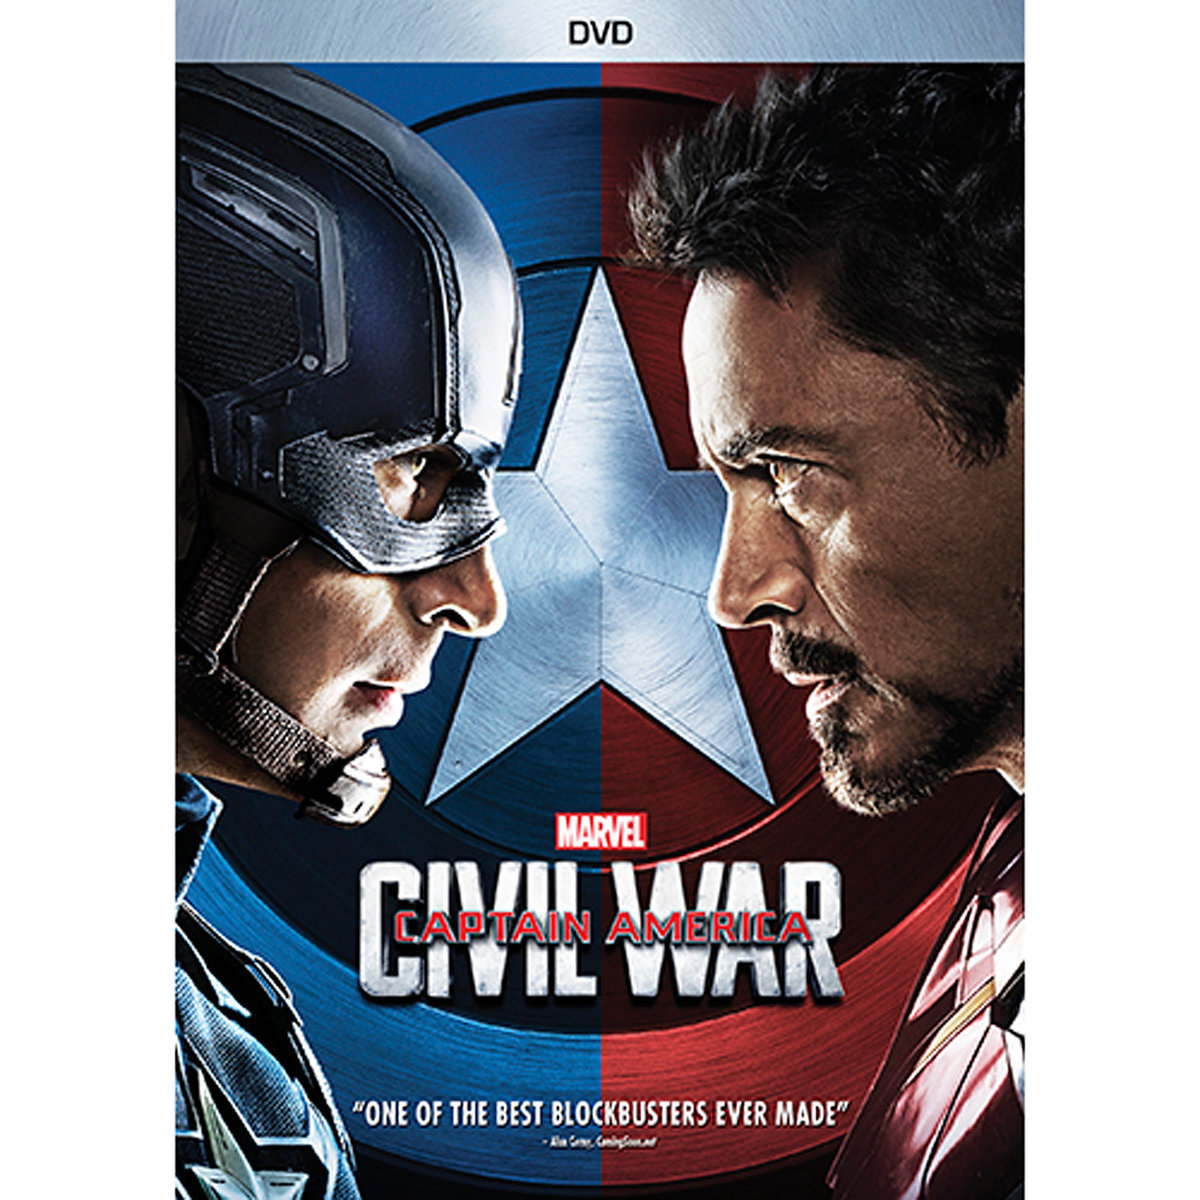 Captain America: Civil War (DVD) by Walt Disney Studios